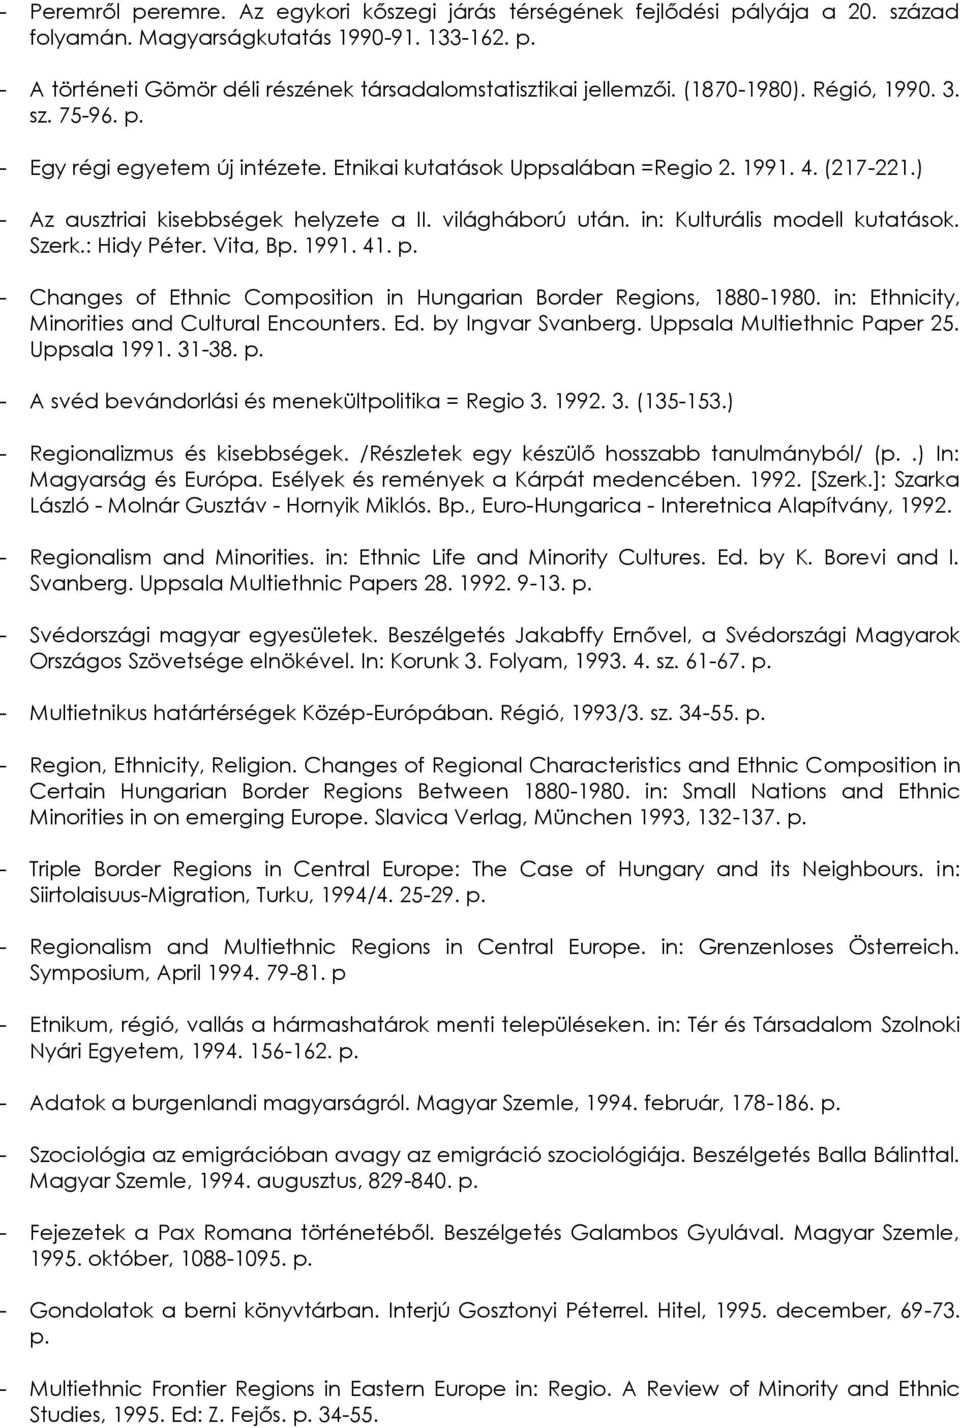 in: Kulturális modell kutatások. Szerk.: Hidy Péter. Vita, Bp. 1991. 41. p. - Changes of Ethnic Composition in Hungarian Border Regions, 1880-1980. in: Ethnicity, Minorities and Cultural Encounters.